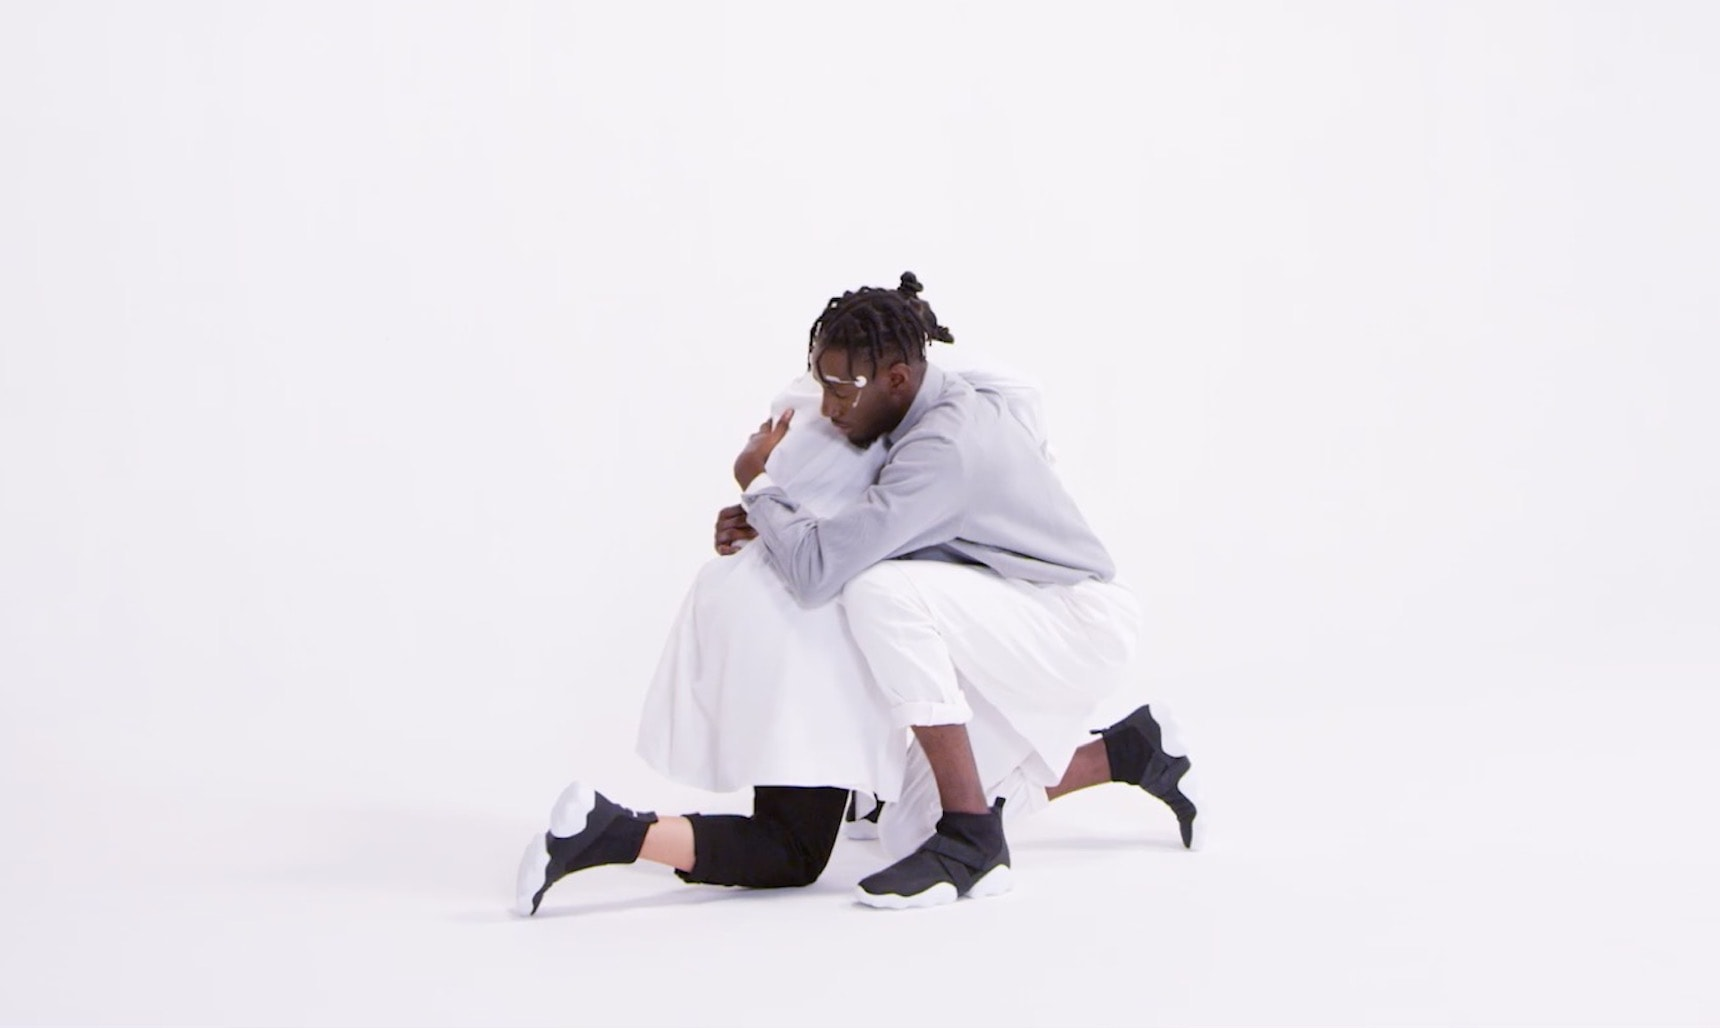 A black dancer duo hugging on white background